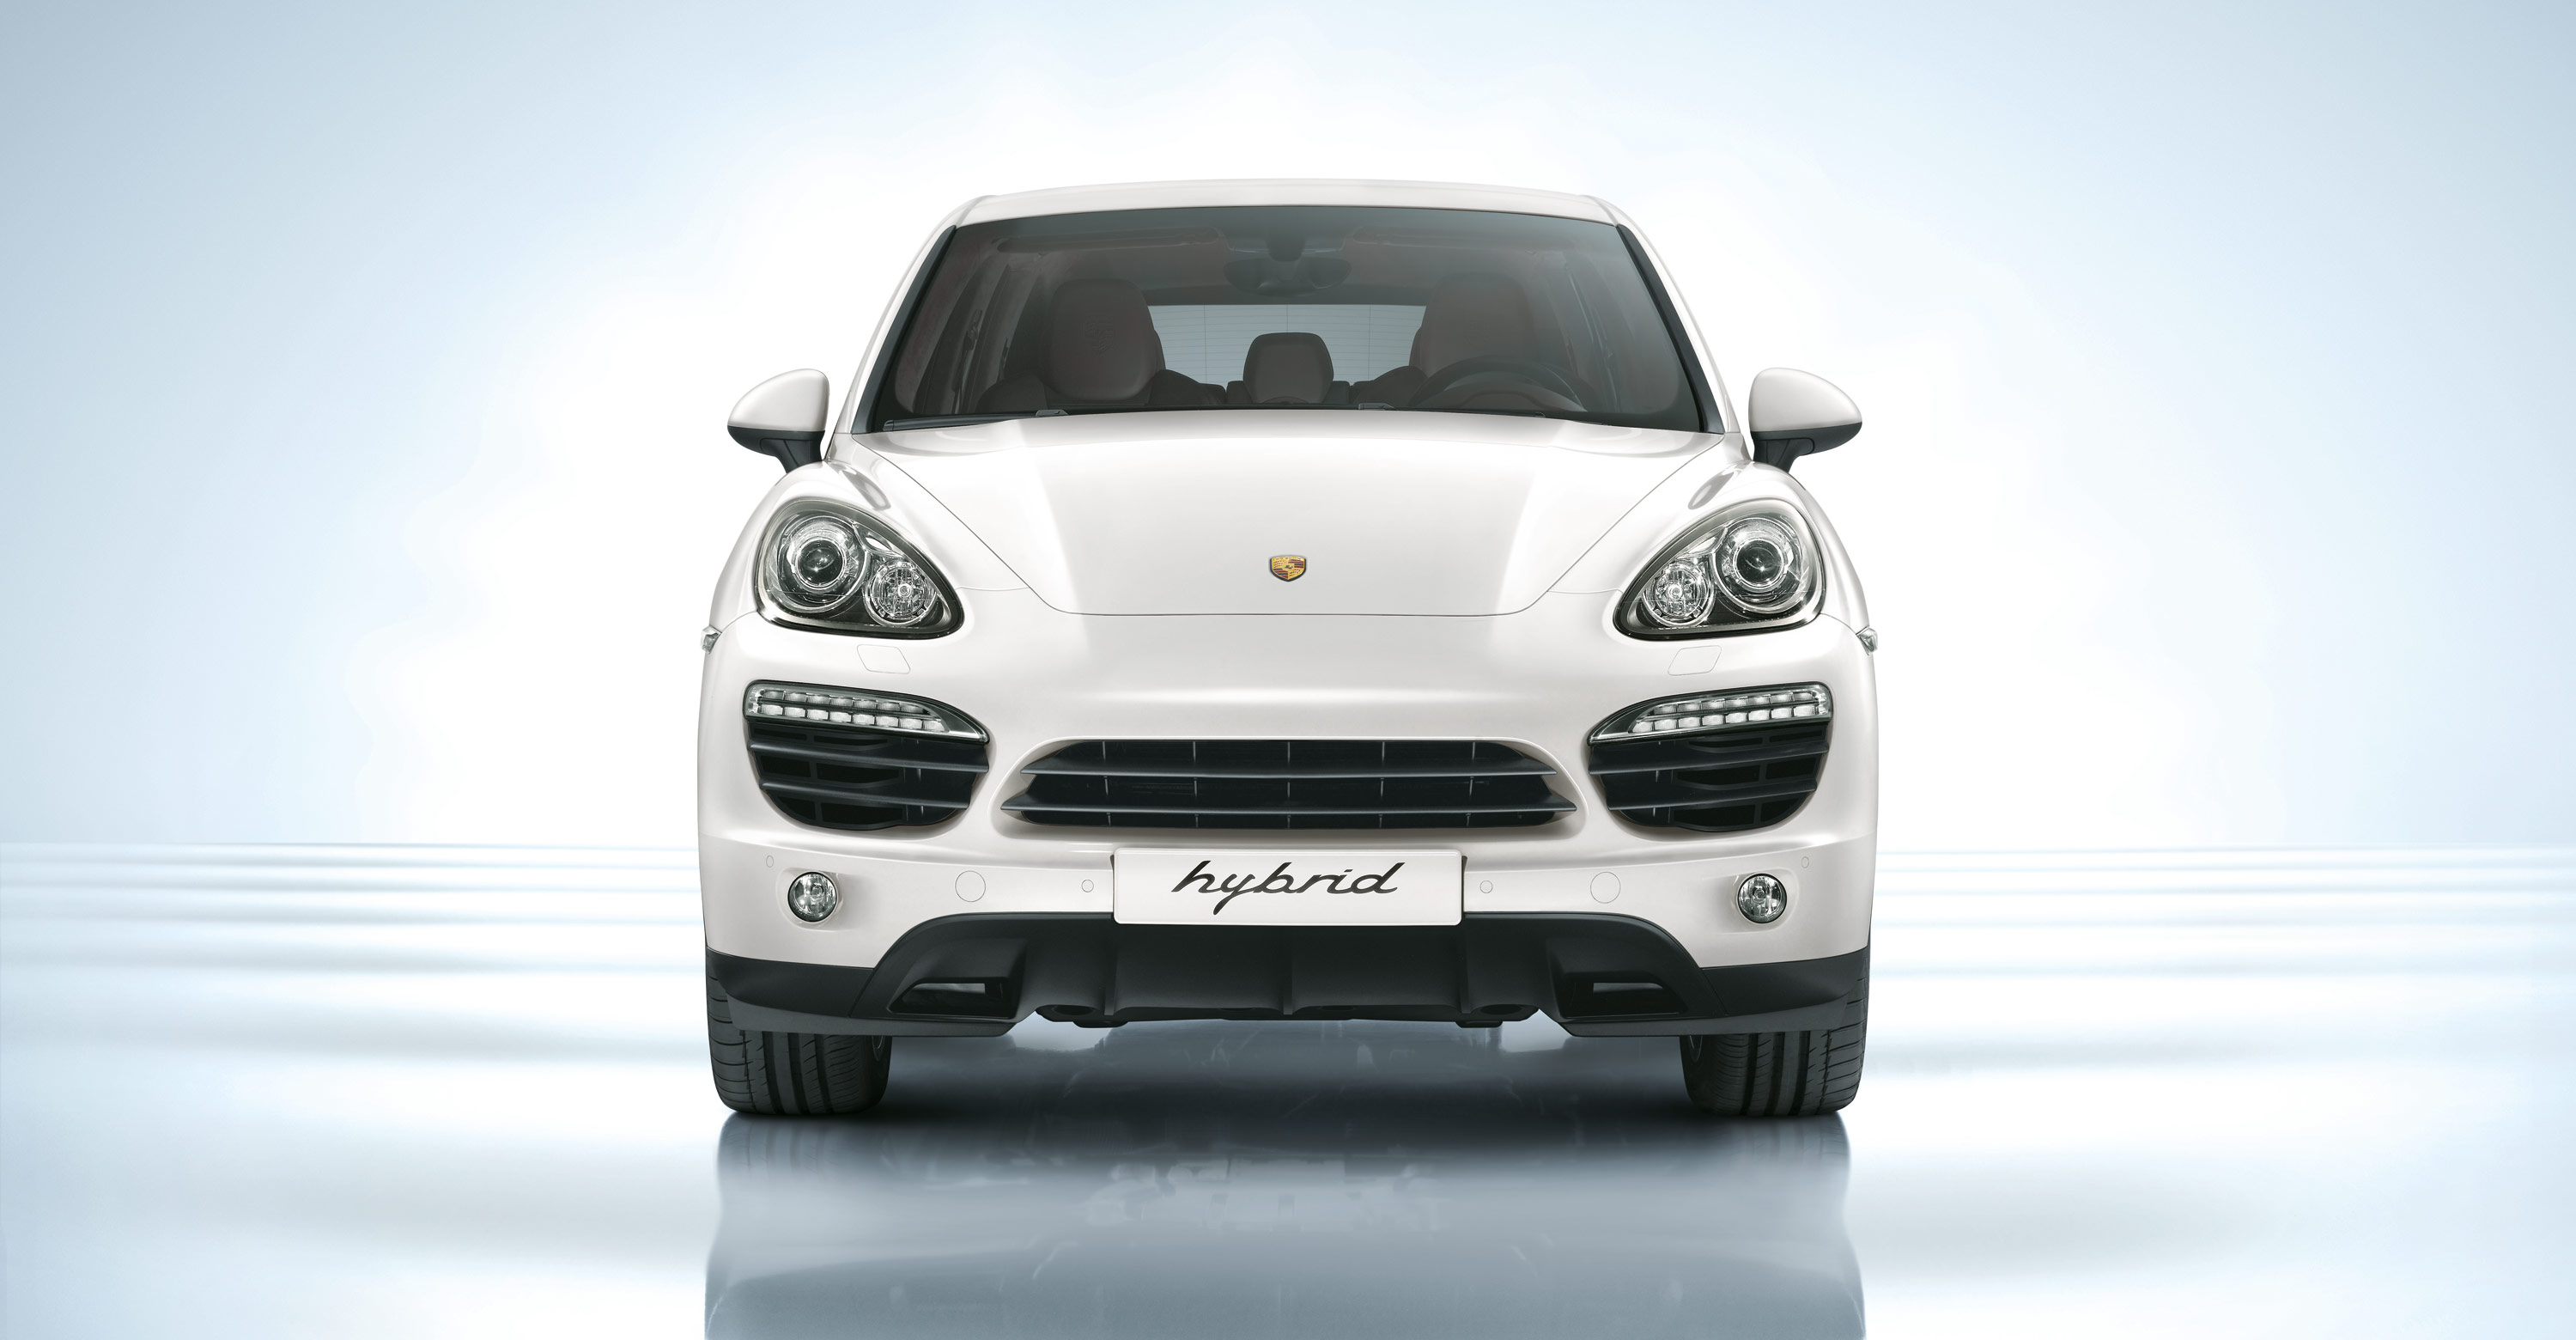 2011 cayenne s hybrid porsche mania. Black Bedroom Furniture Sets. Home Design Ideas